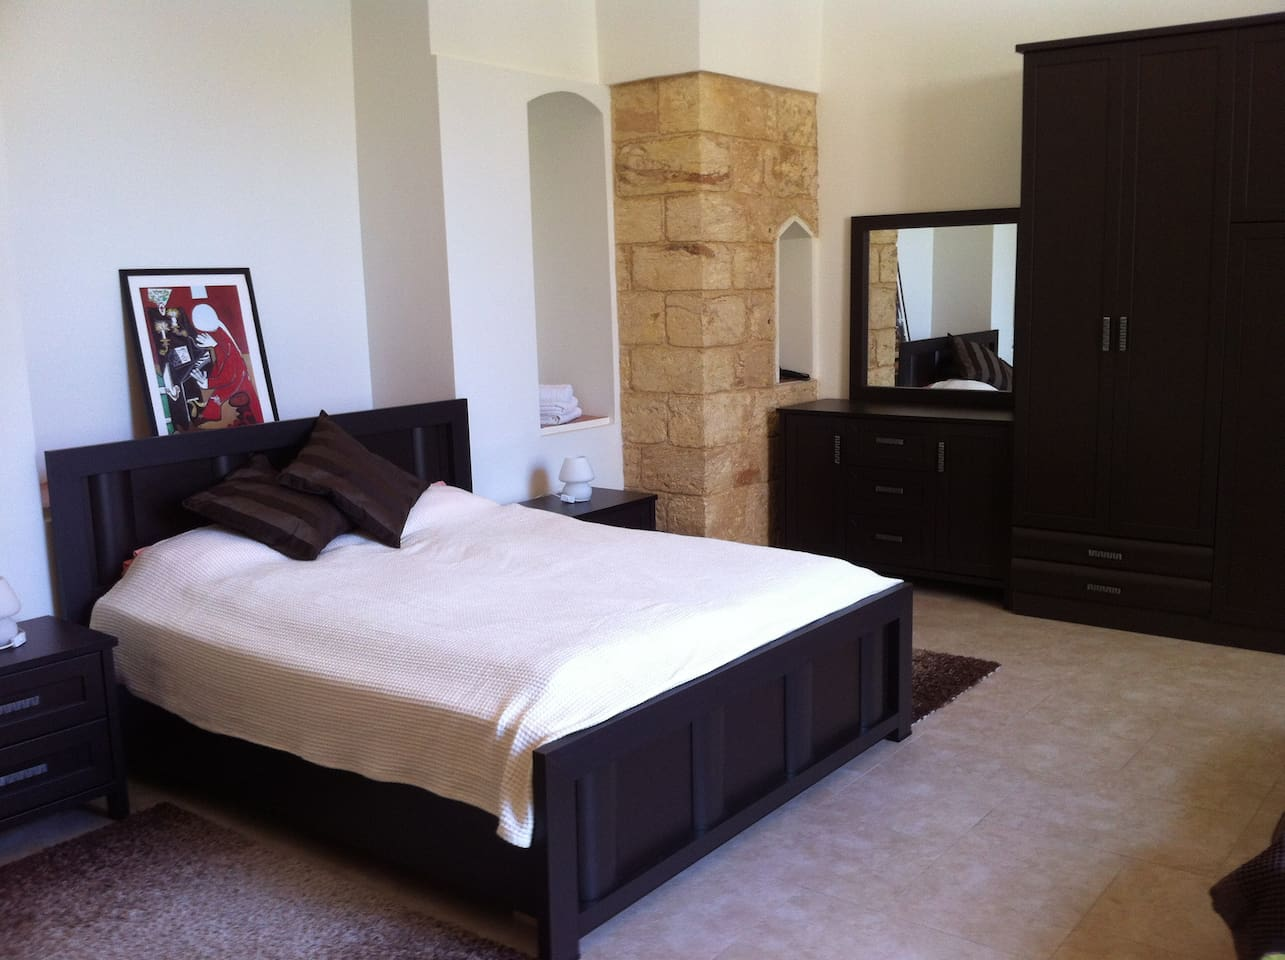 Suite, Double bed room with private bathroom.